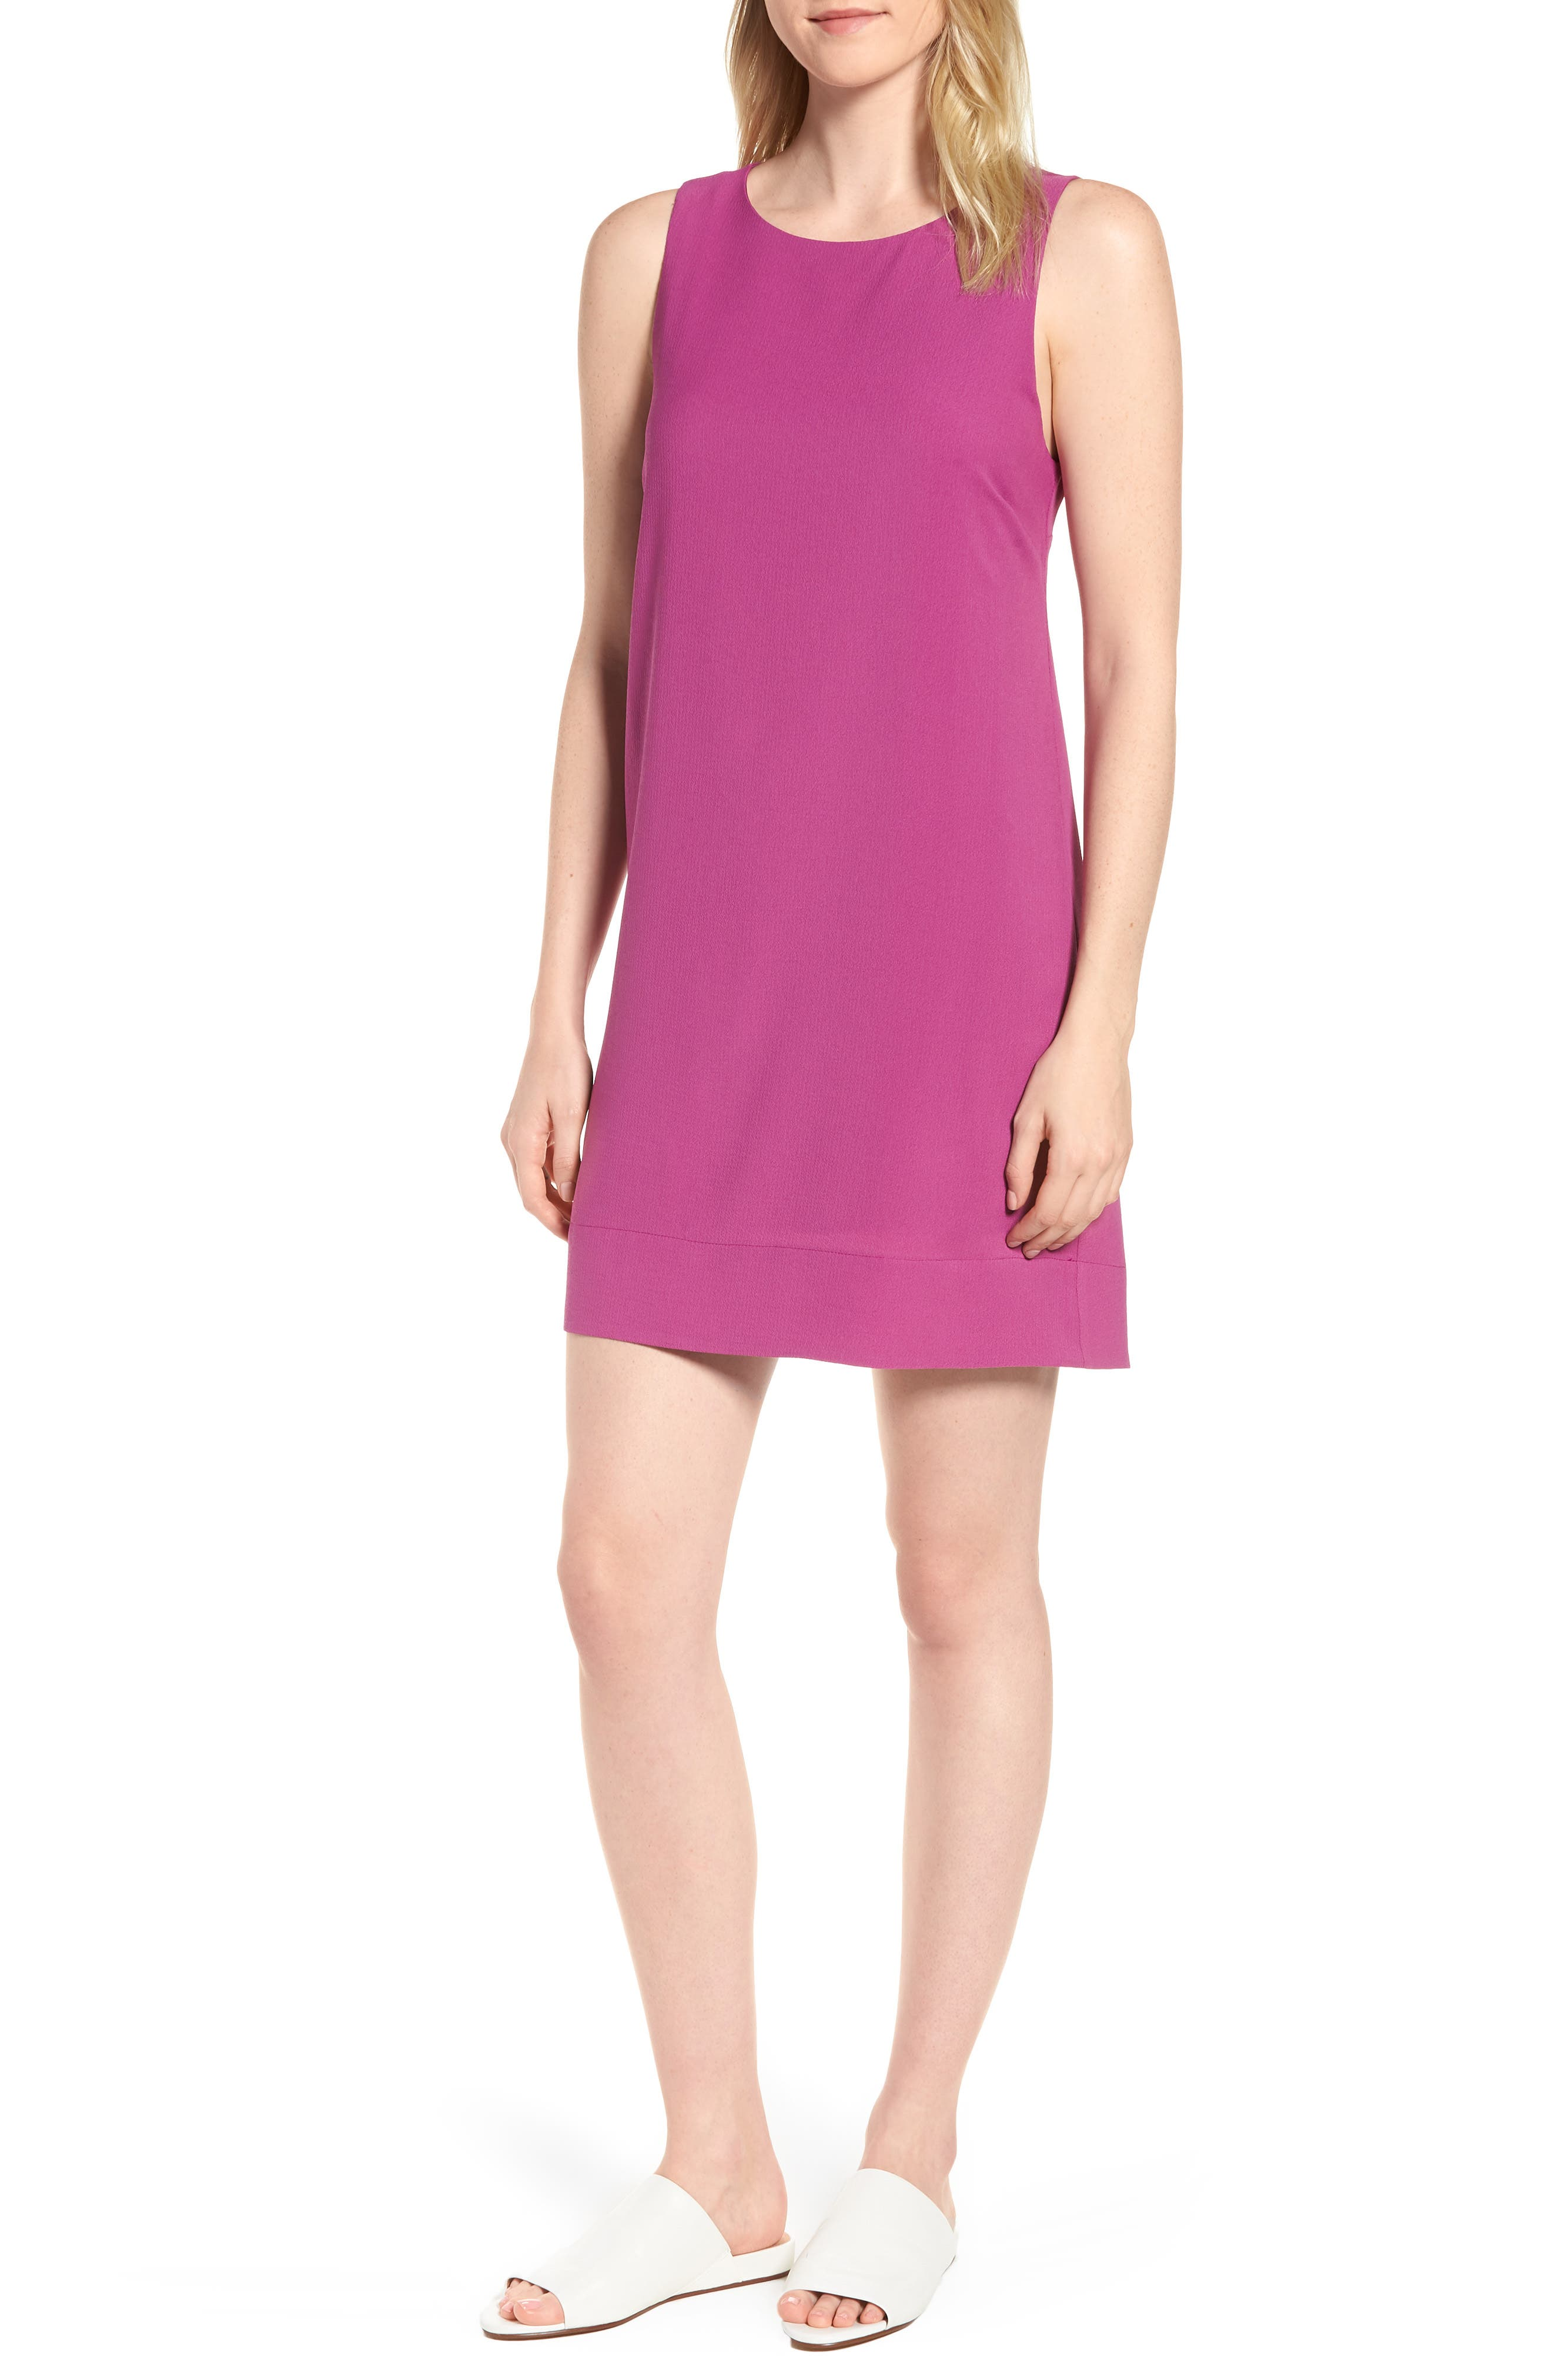 Gibson x Living in Yellow Becca Tank Dress (Regular & Petite) (Nordstrom Exclusive)